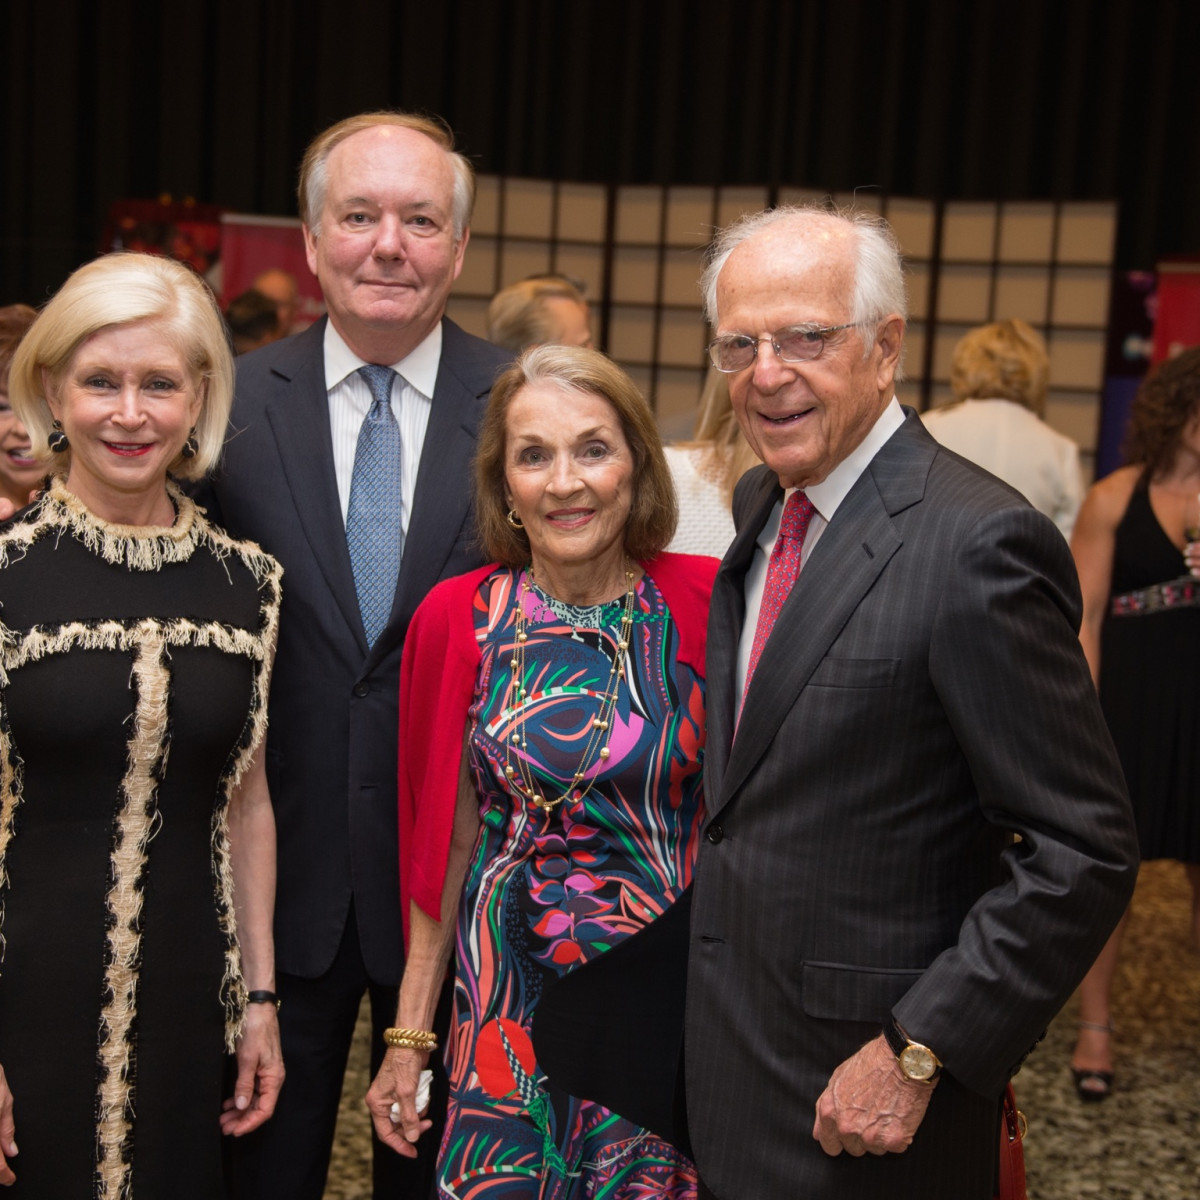 Ann and John Bookout; Mickie and Ron Huebsch at MFAH Mexican Modernism dinner